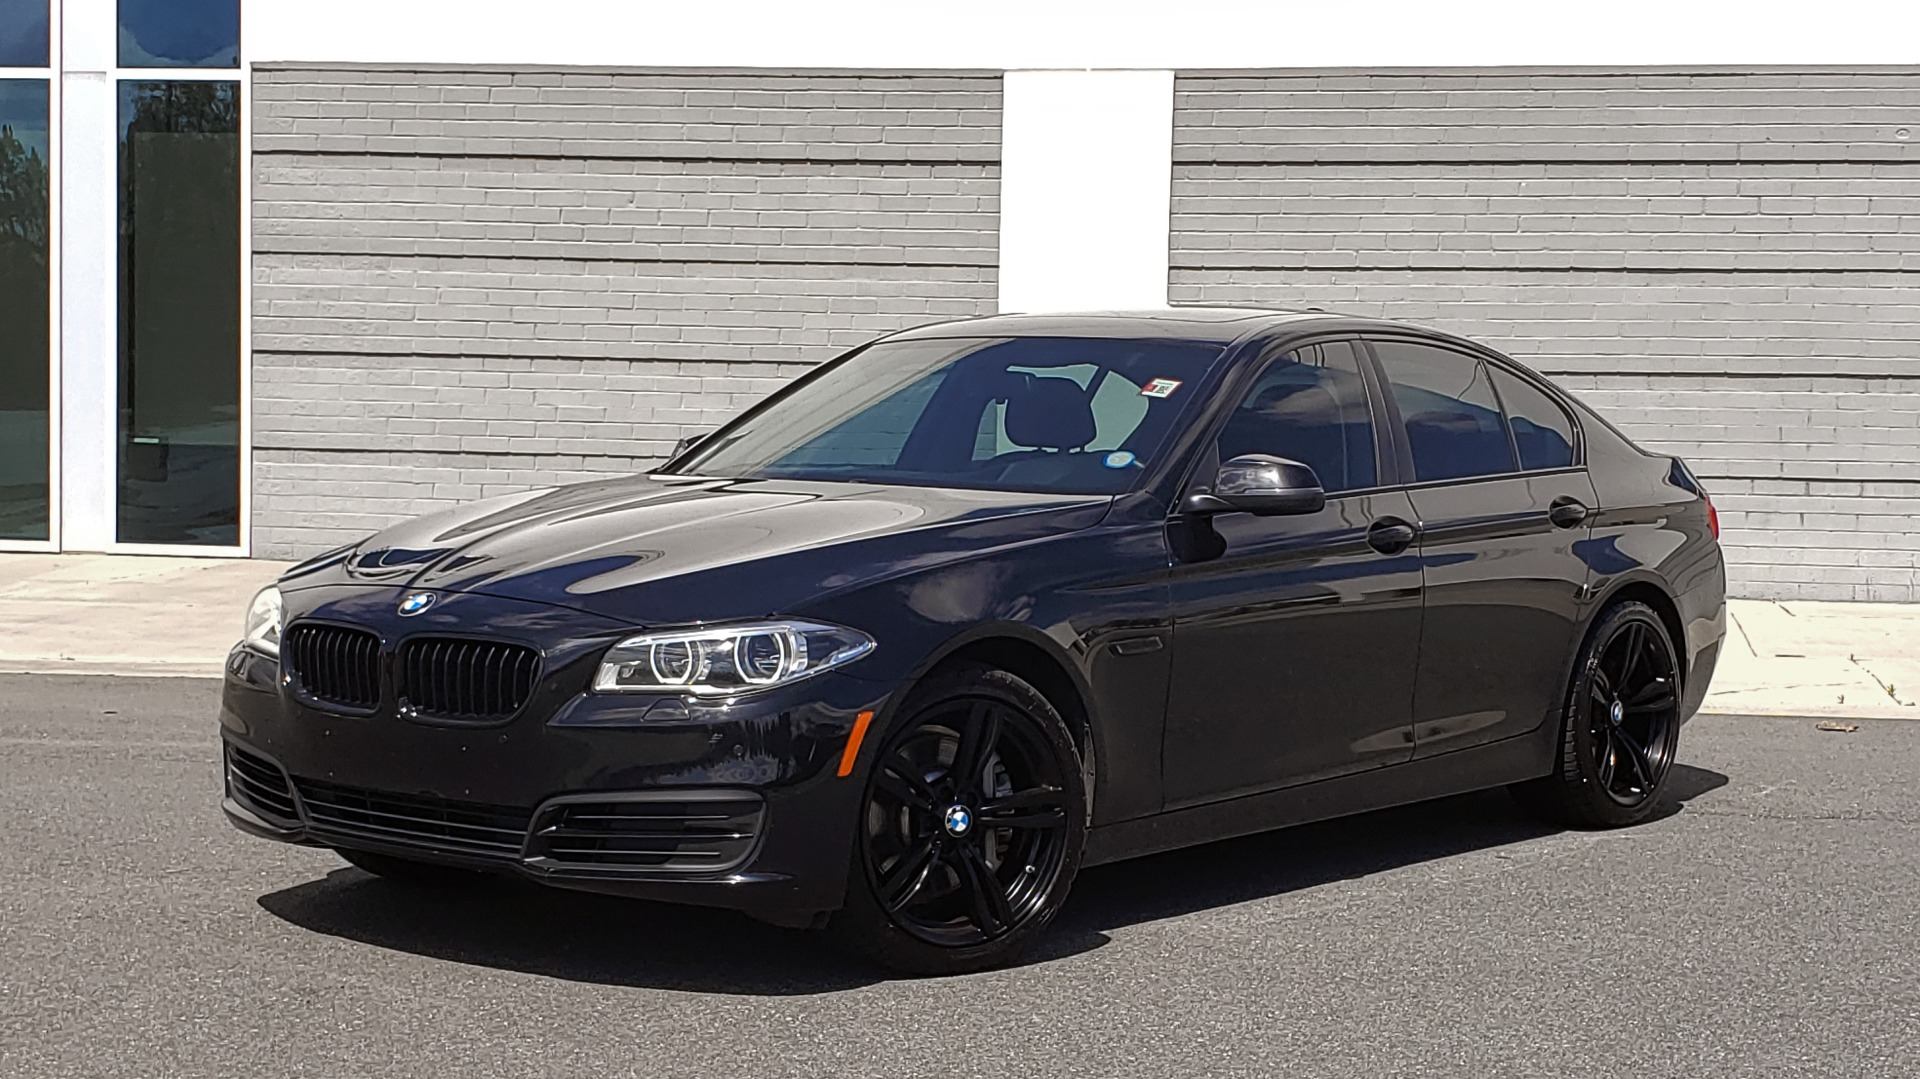 Used 2014 BMW 5 SERIES 535I PREMIUM / HUD / NAV / HTD STS / SUNROOF / REARVIEW for sale Sold at Formula Imports in Charlotte NC 28227 1